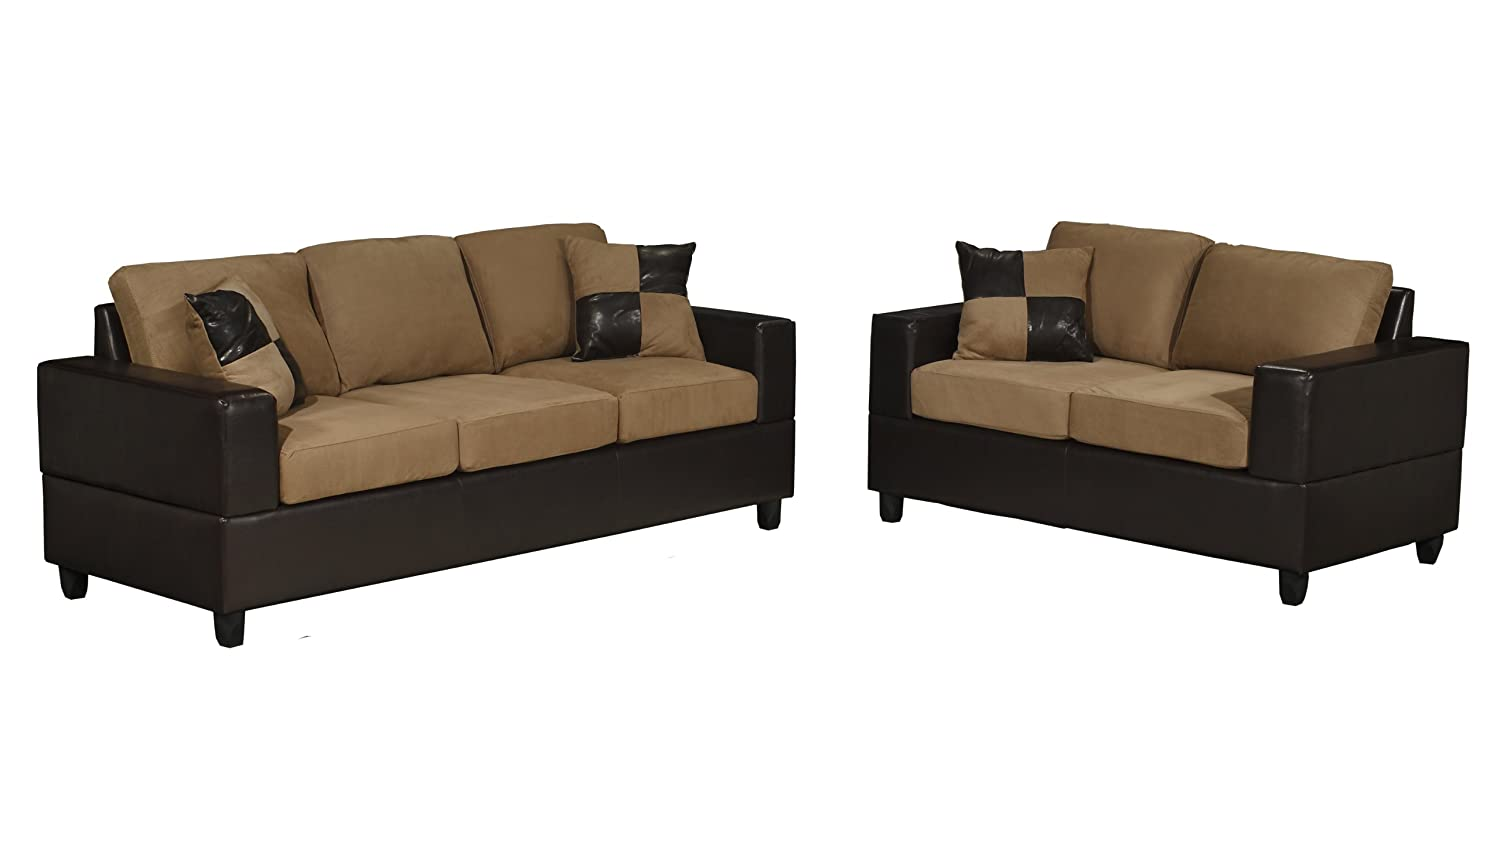 Amazoncom Bobkona Seattle Microfiber Sofa and Loveseat 2Piece